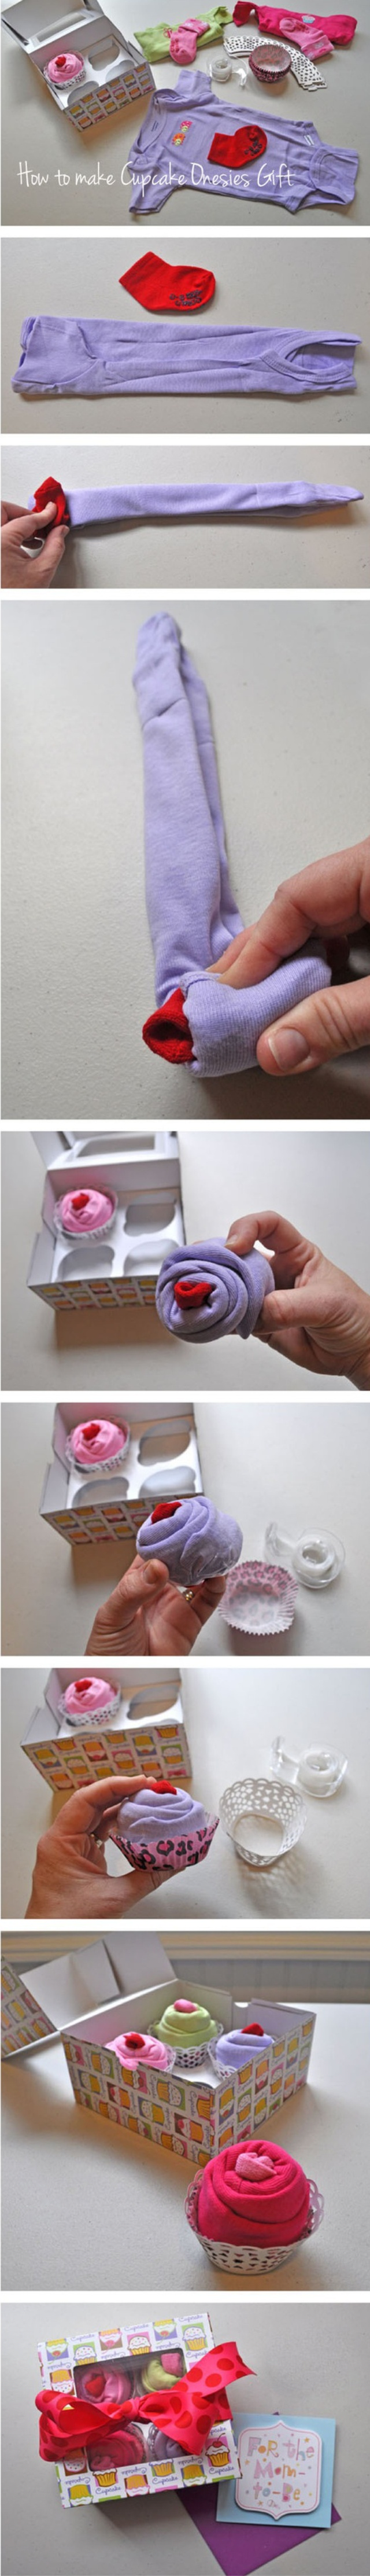 DIY: Cupcake onesie's! Cute baby shower gift idea!